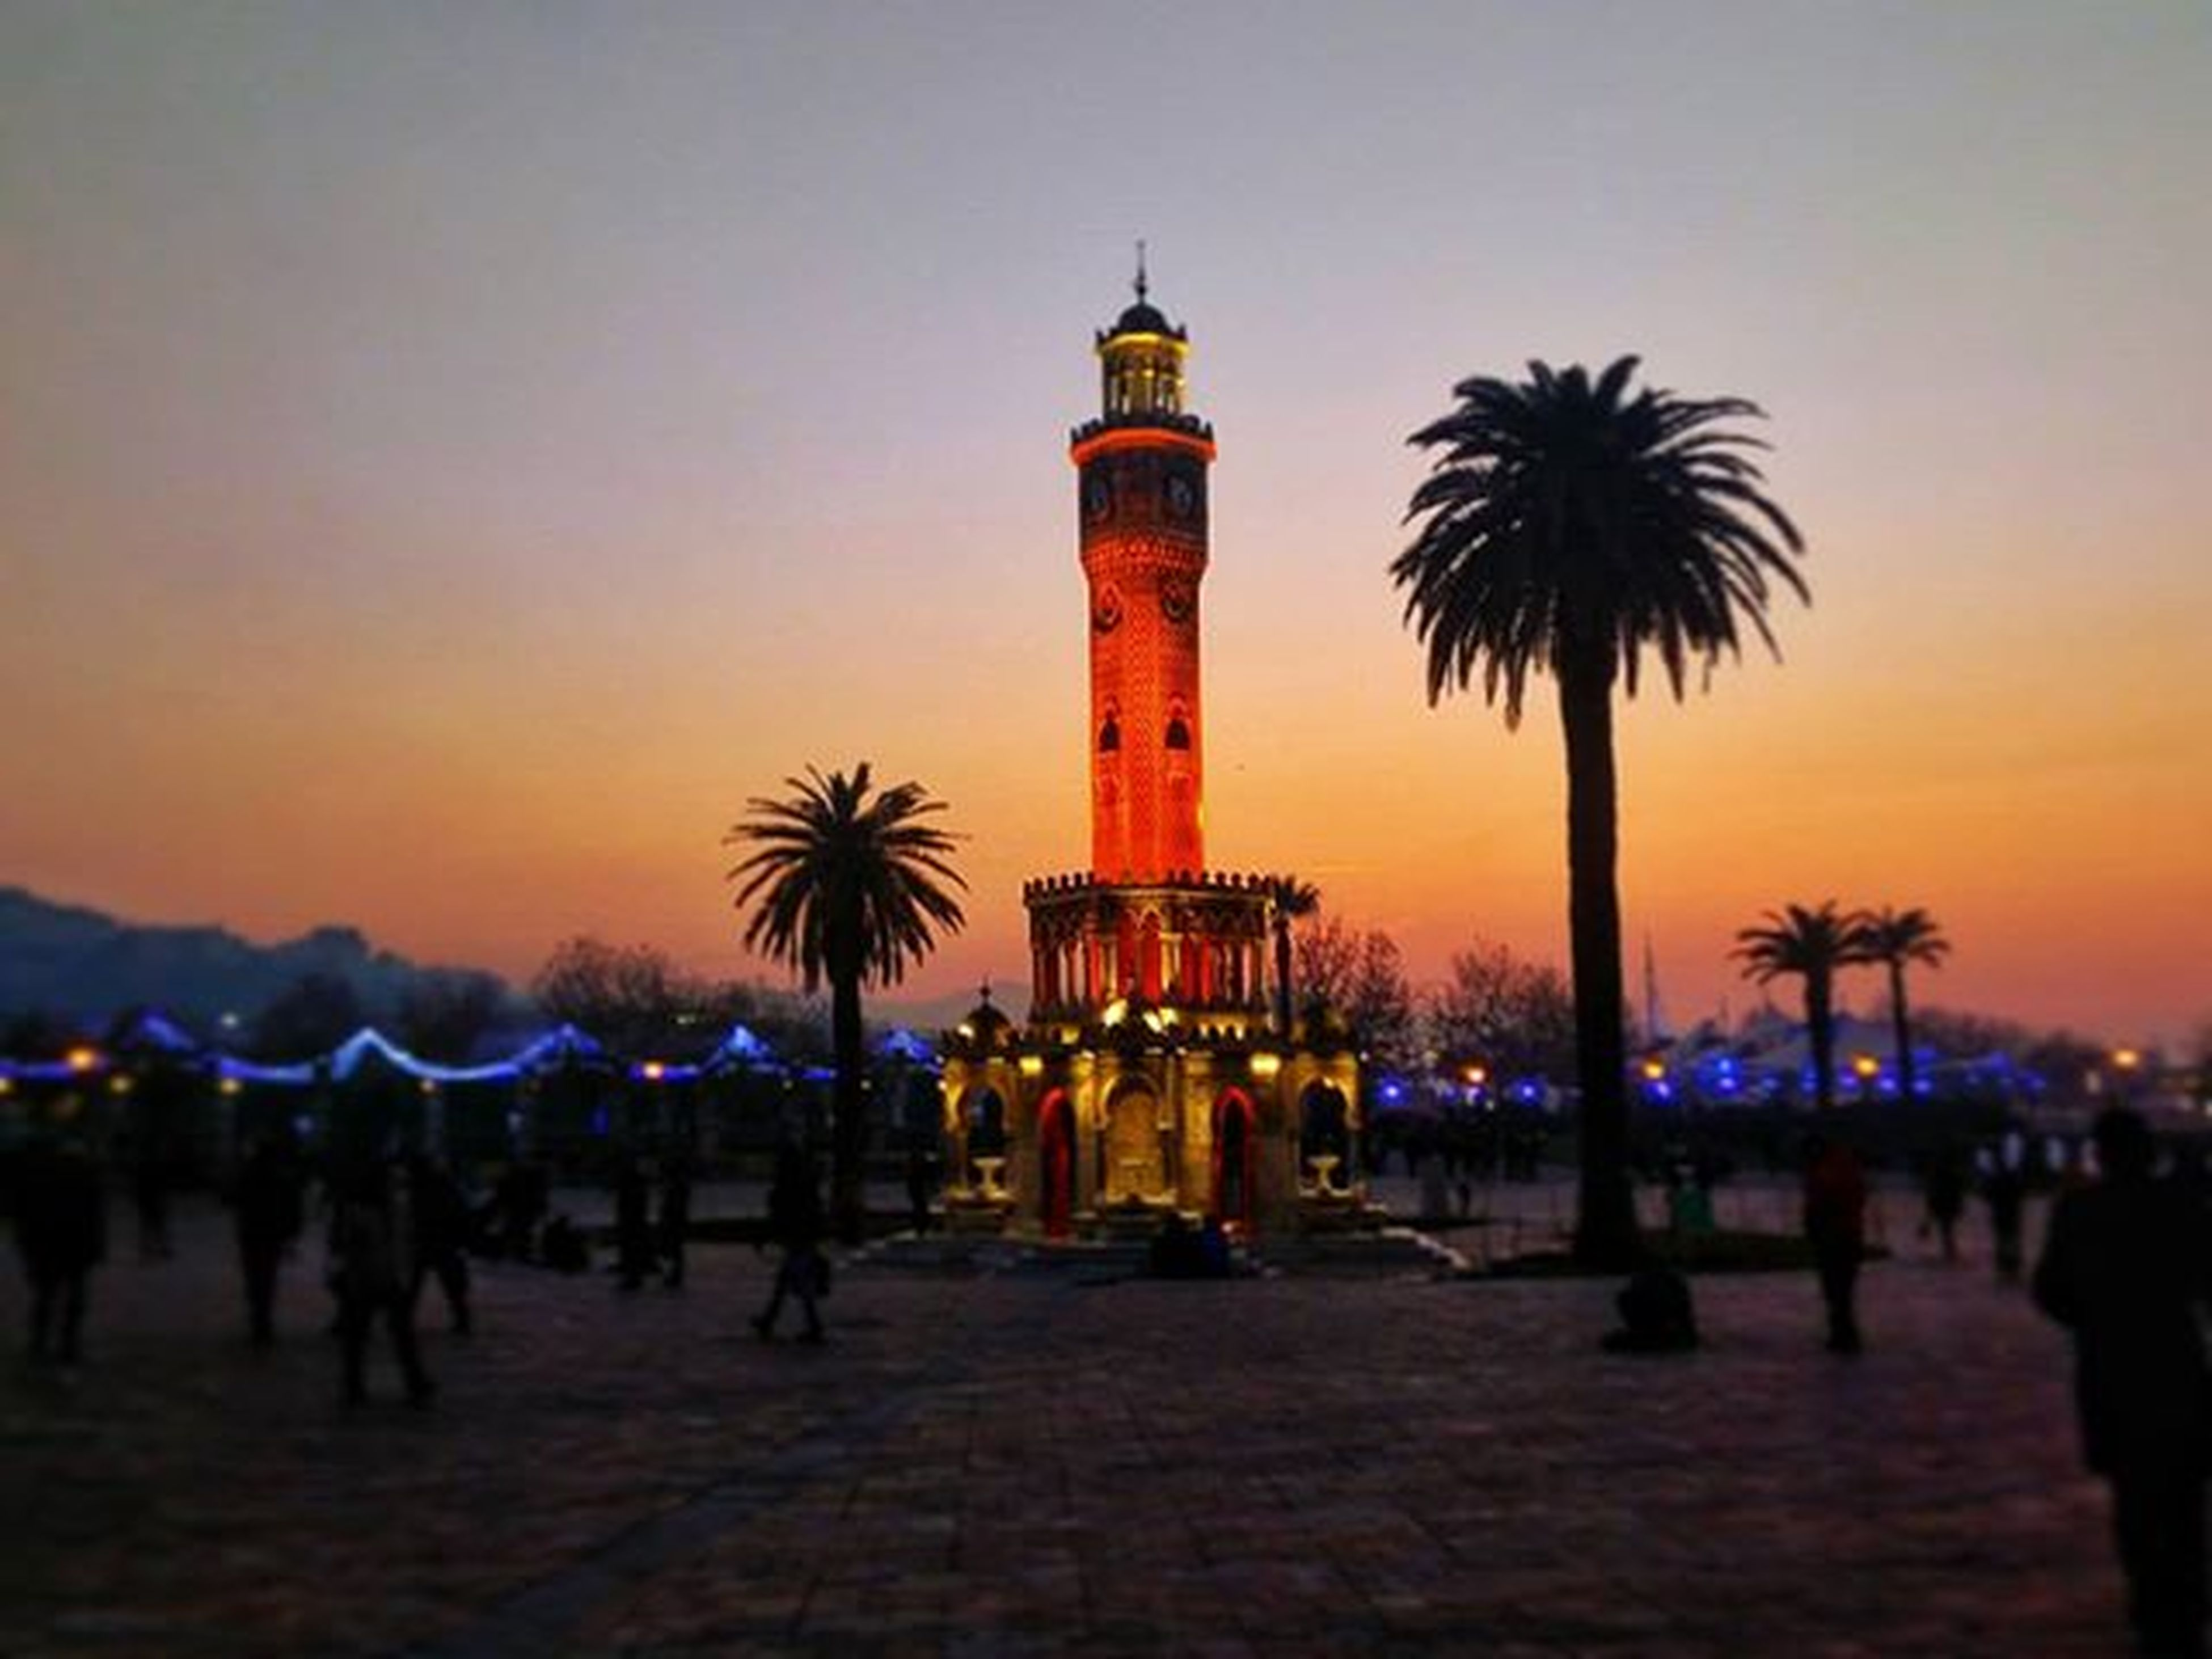 sunset, silhouette, built structure, architecture, building exterior, palm tree, clear sky, famous place, tourism, travel destinations, dusk, orange color, tower, sky, religion, tall - high, travel, incidental people, guidance, tree